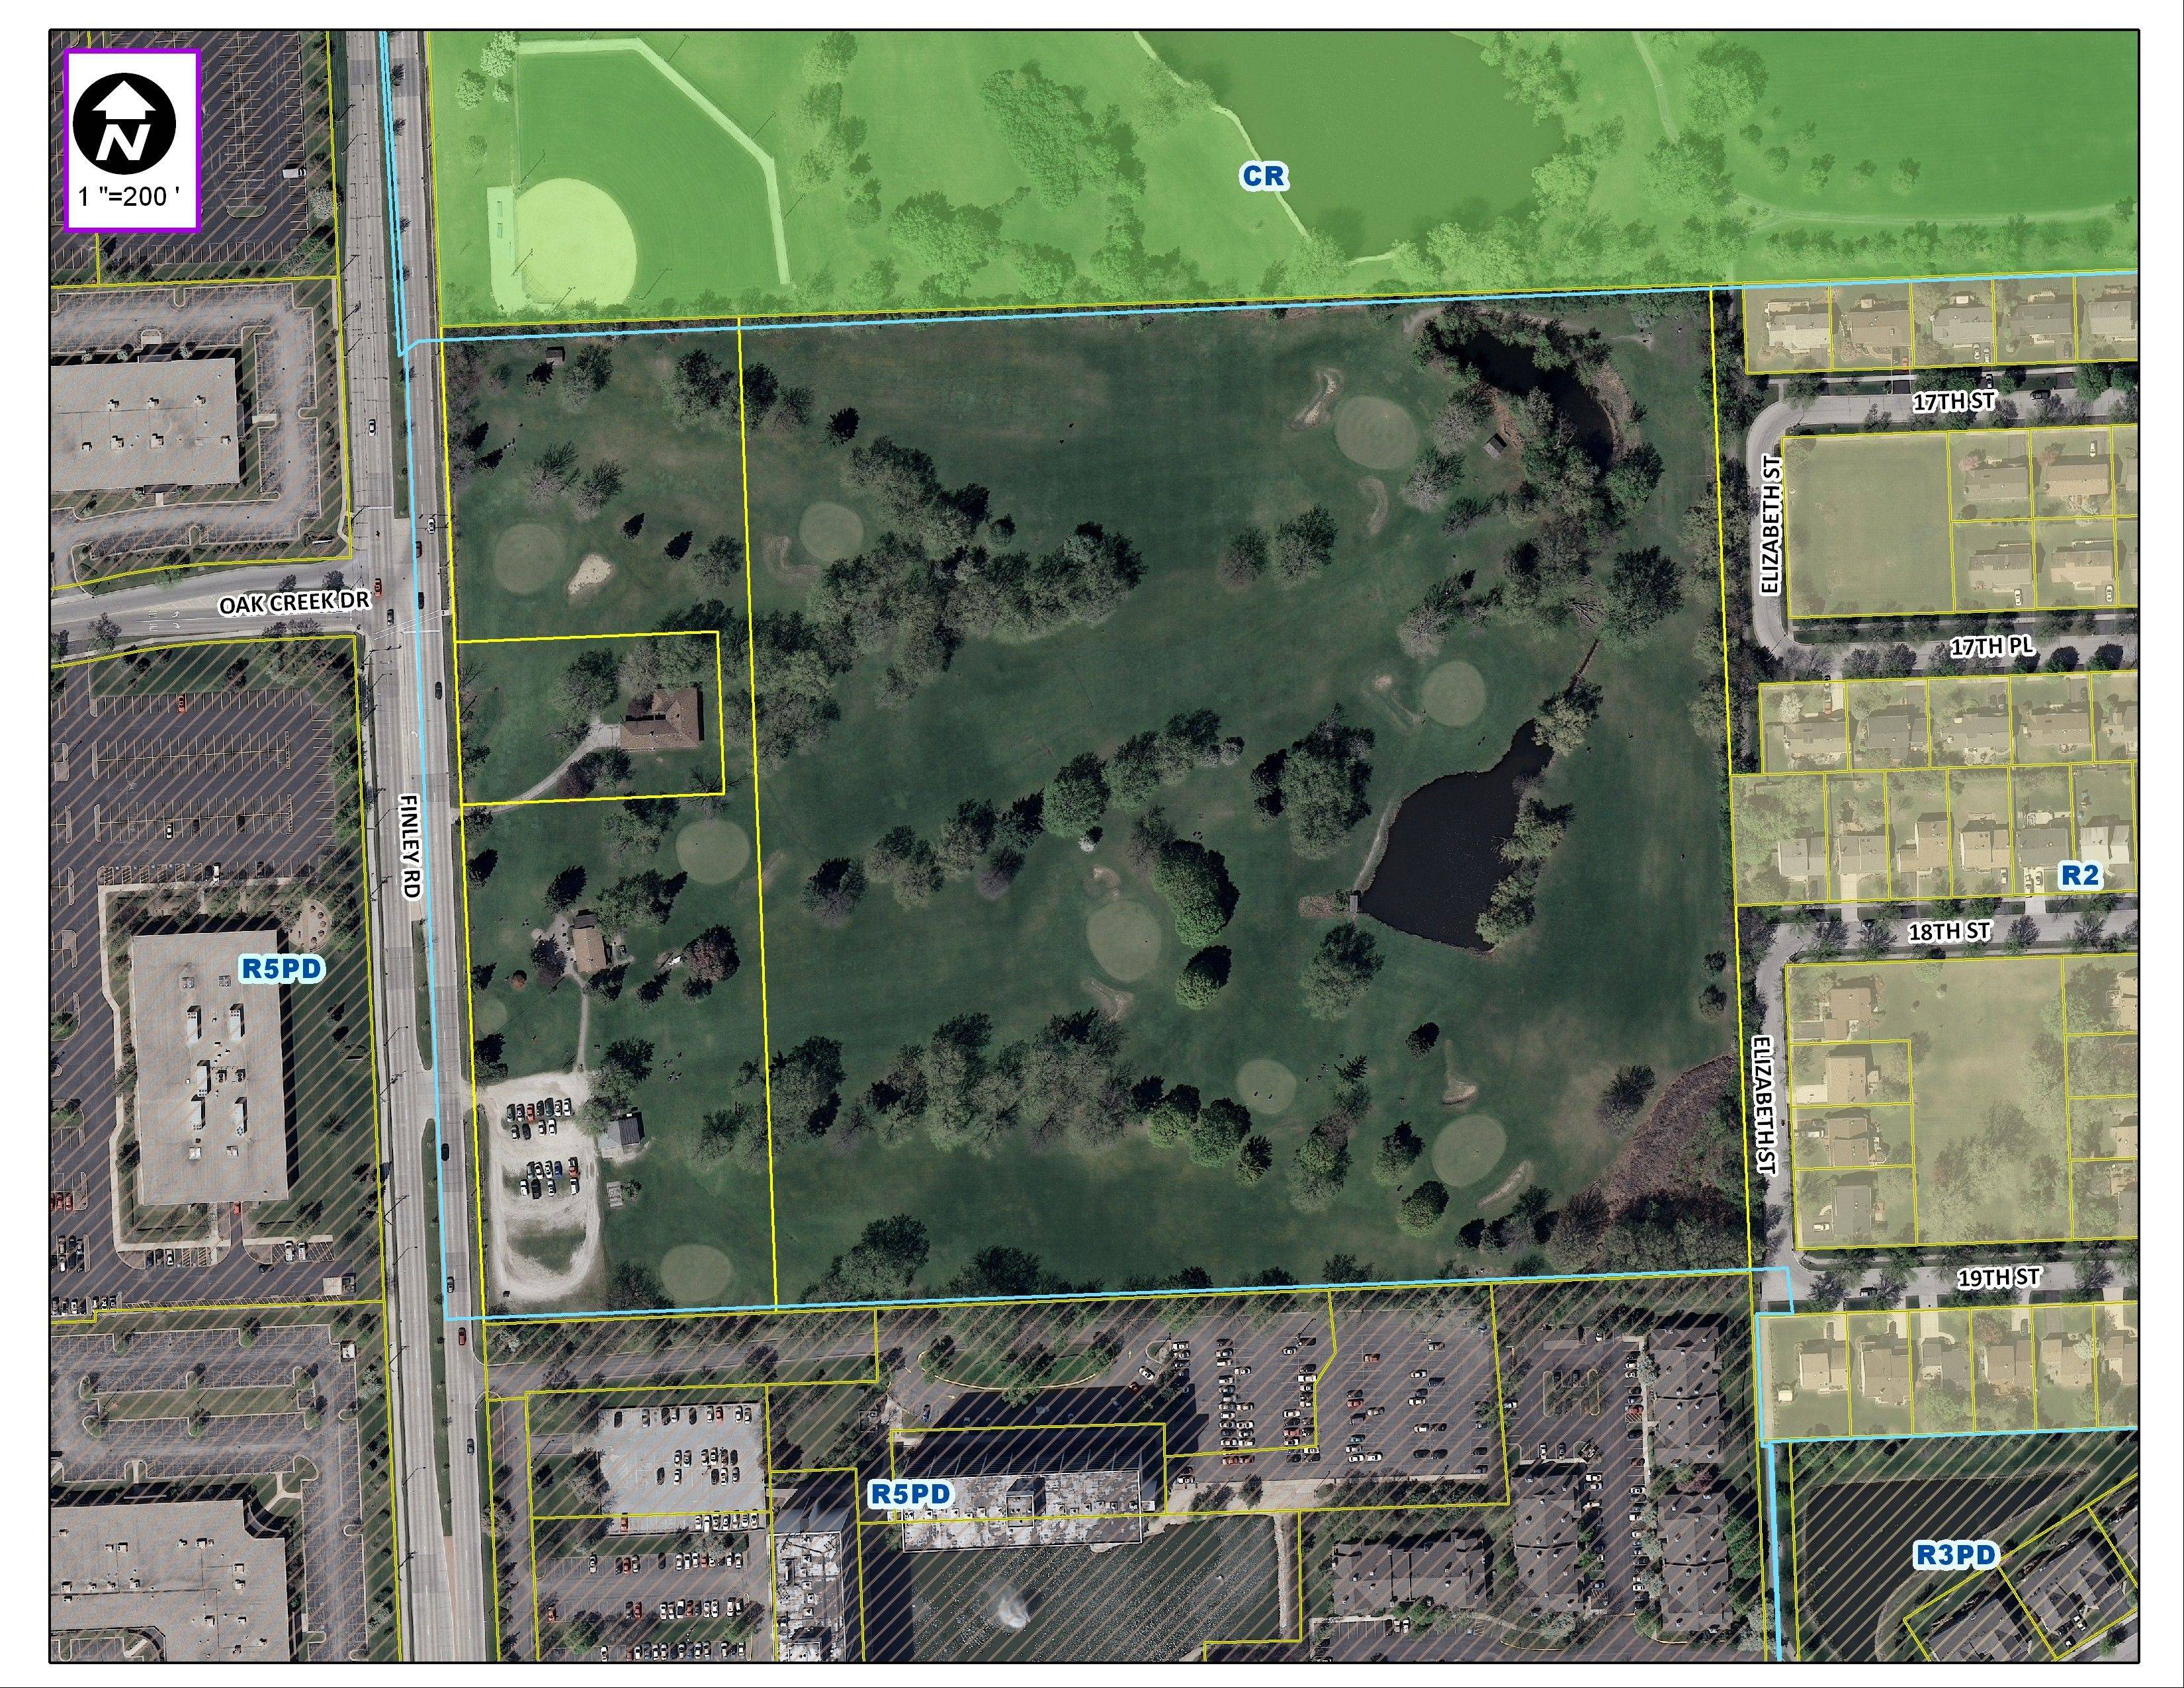 The Ken-Loch golf links near Lombard, shown as the dark color from an aerial view, is for sale and a prospective buyer wants to build apartments and for-sale units on the land.